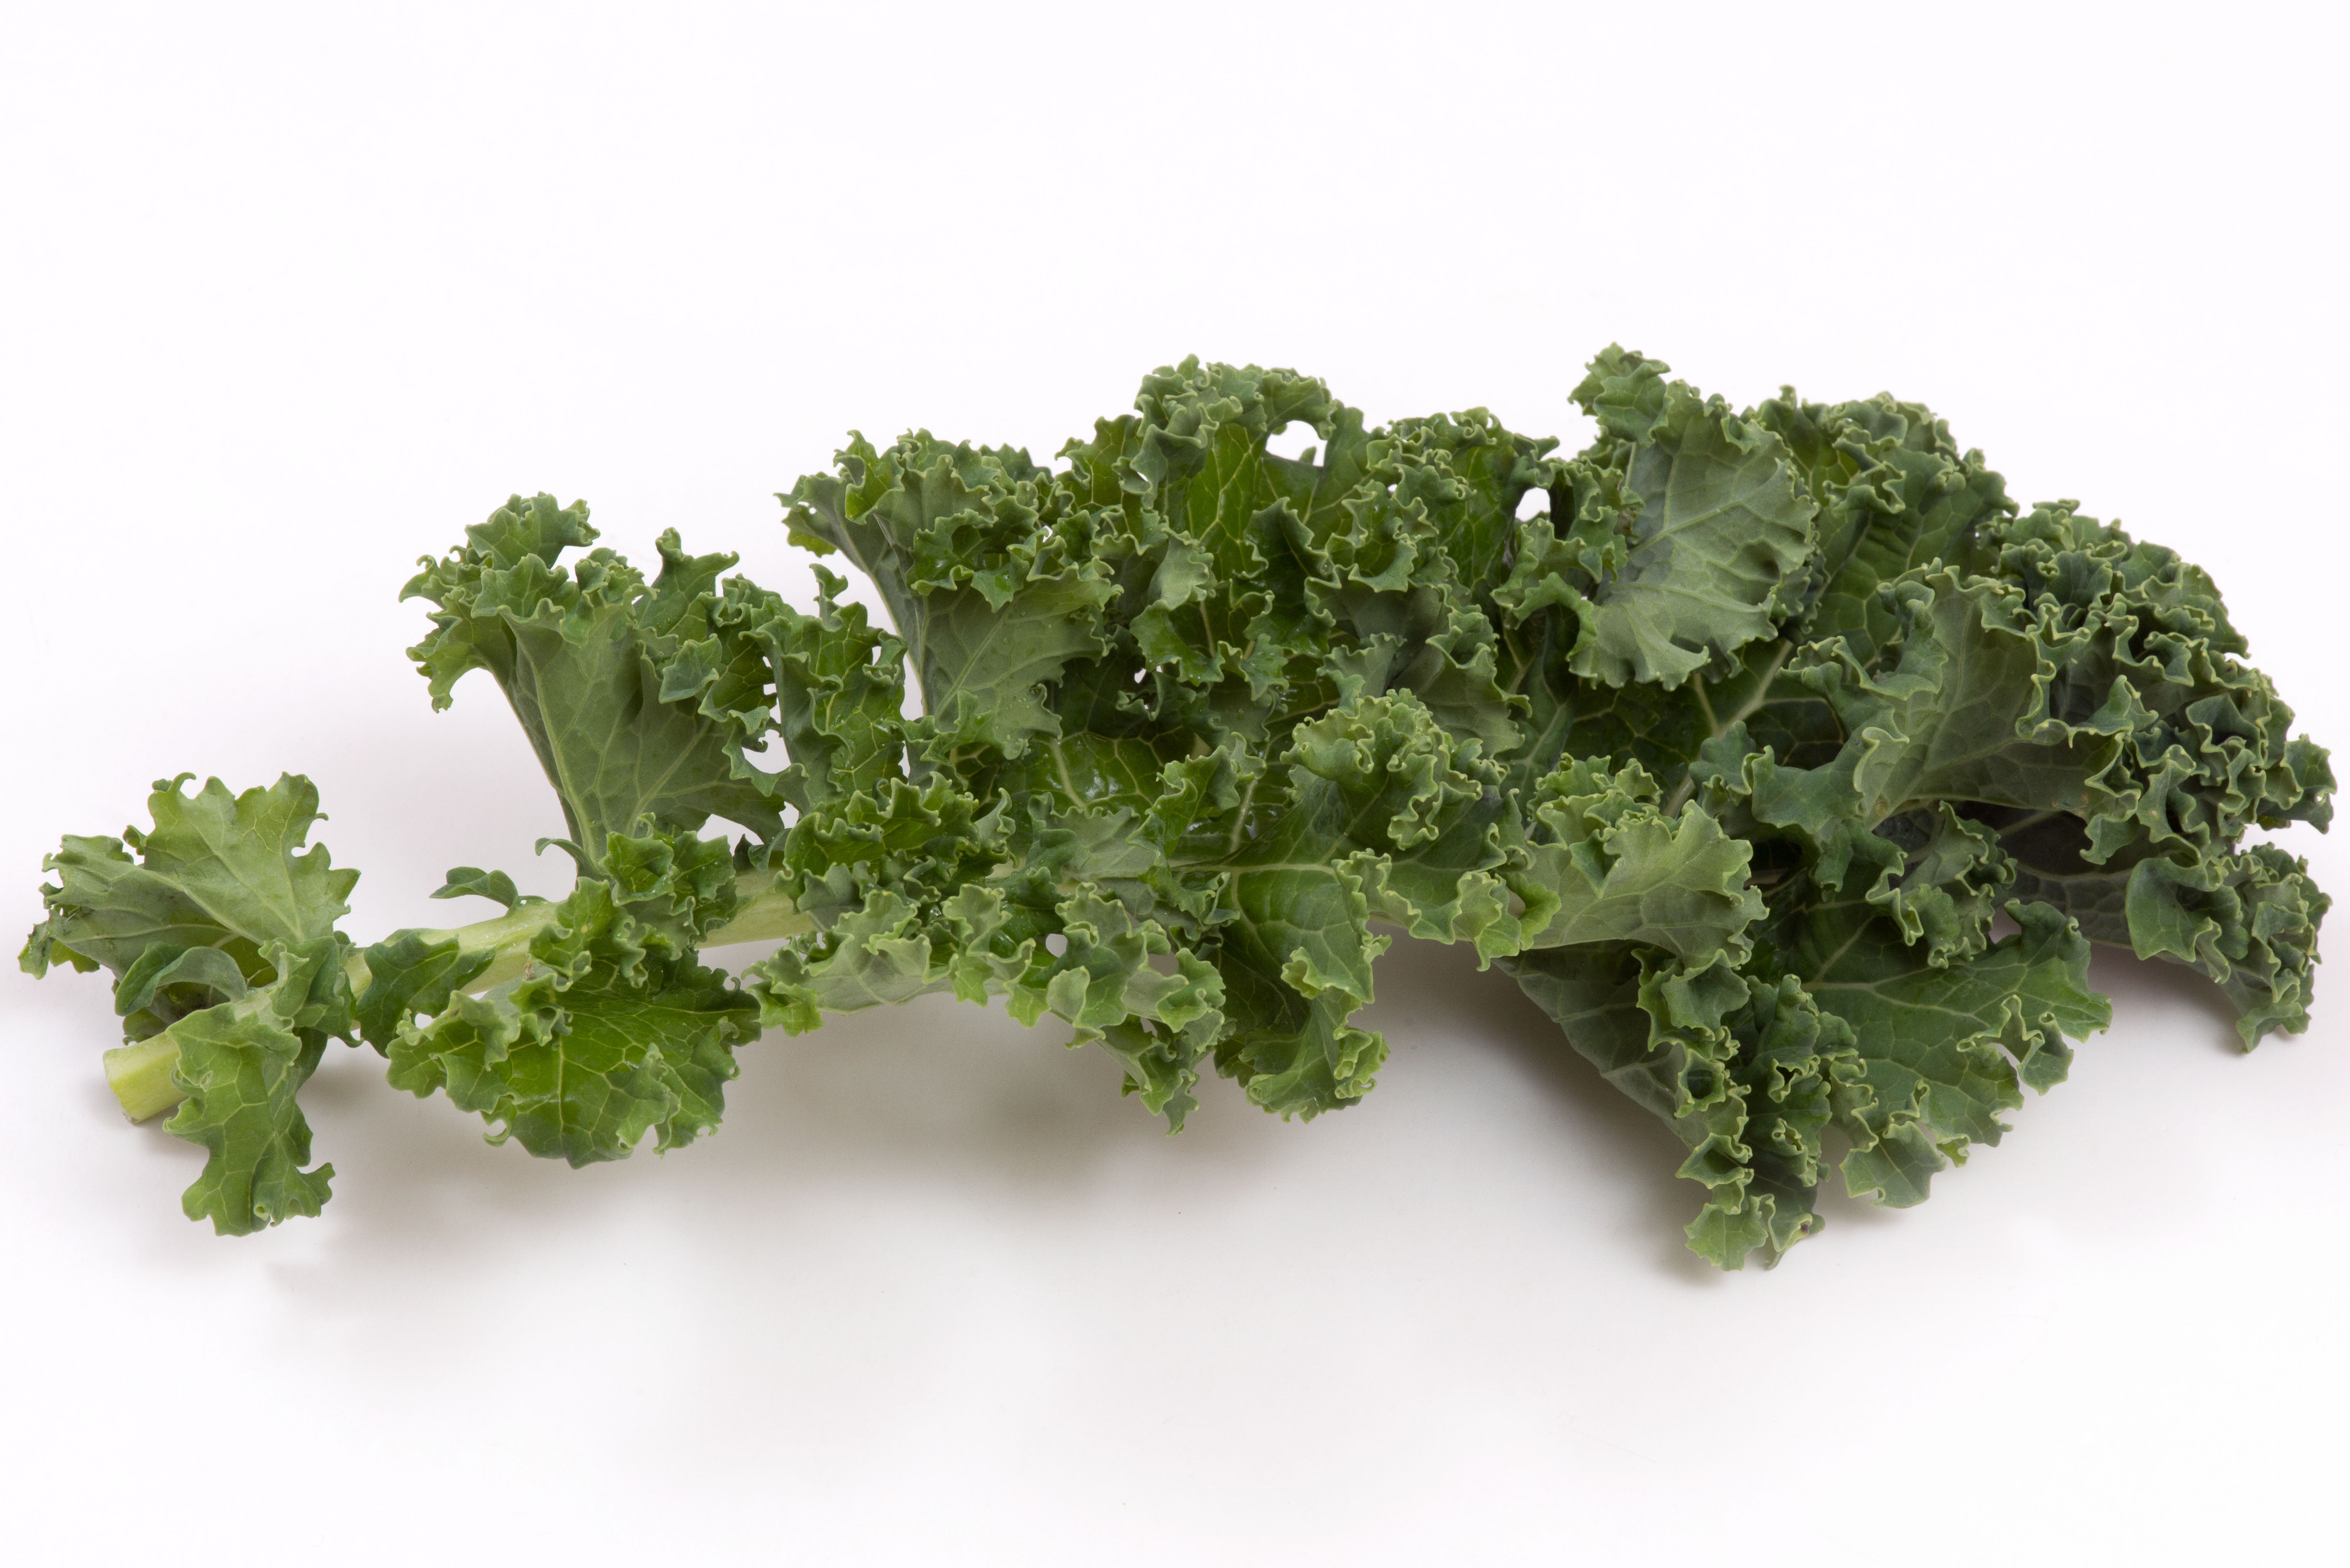 About kale vegetable